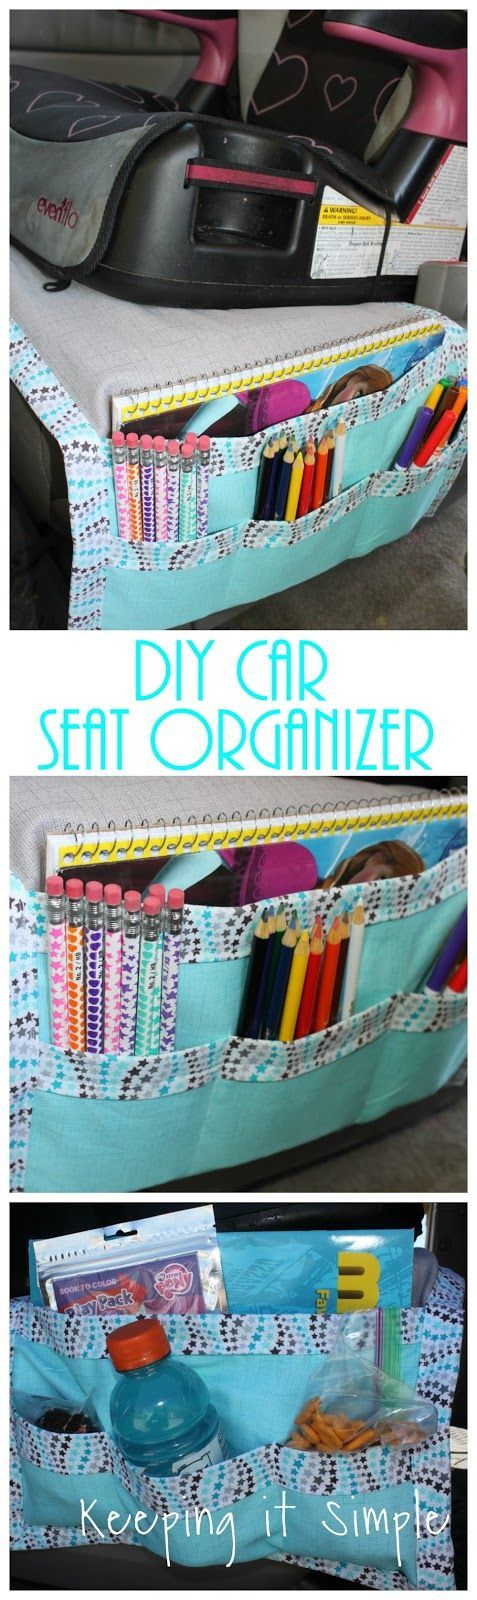 DIY car seat organizer for kid snacks, books and coloring supplies ...